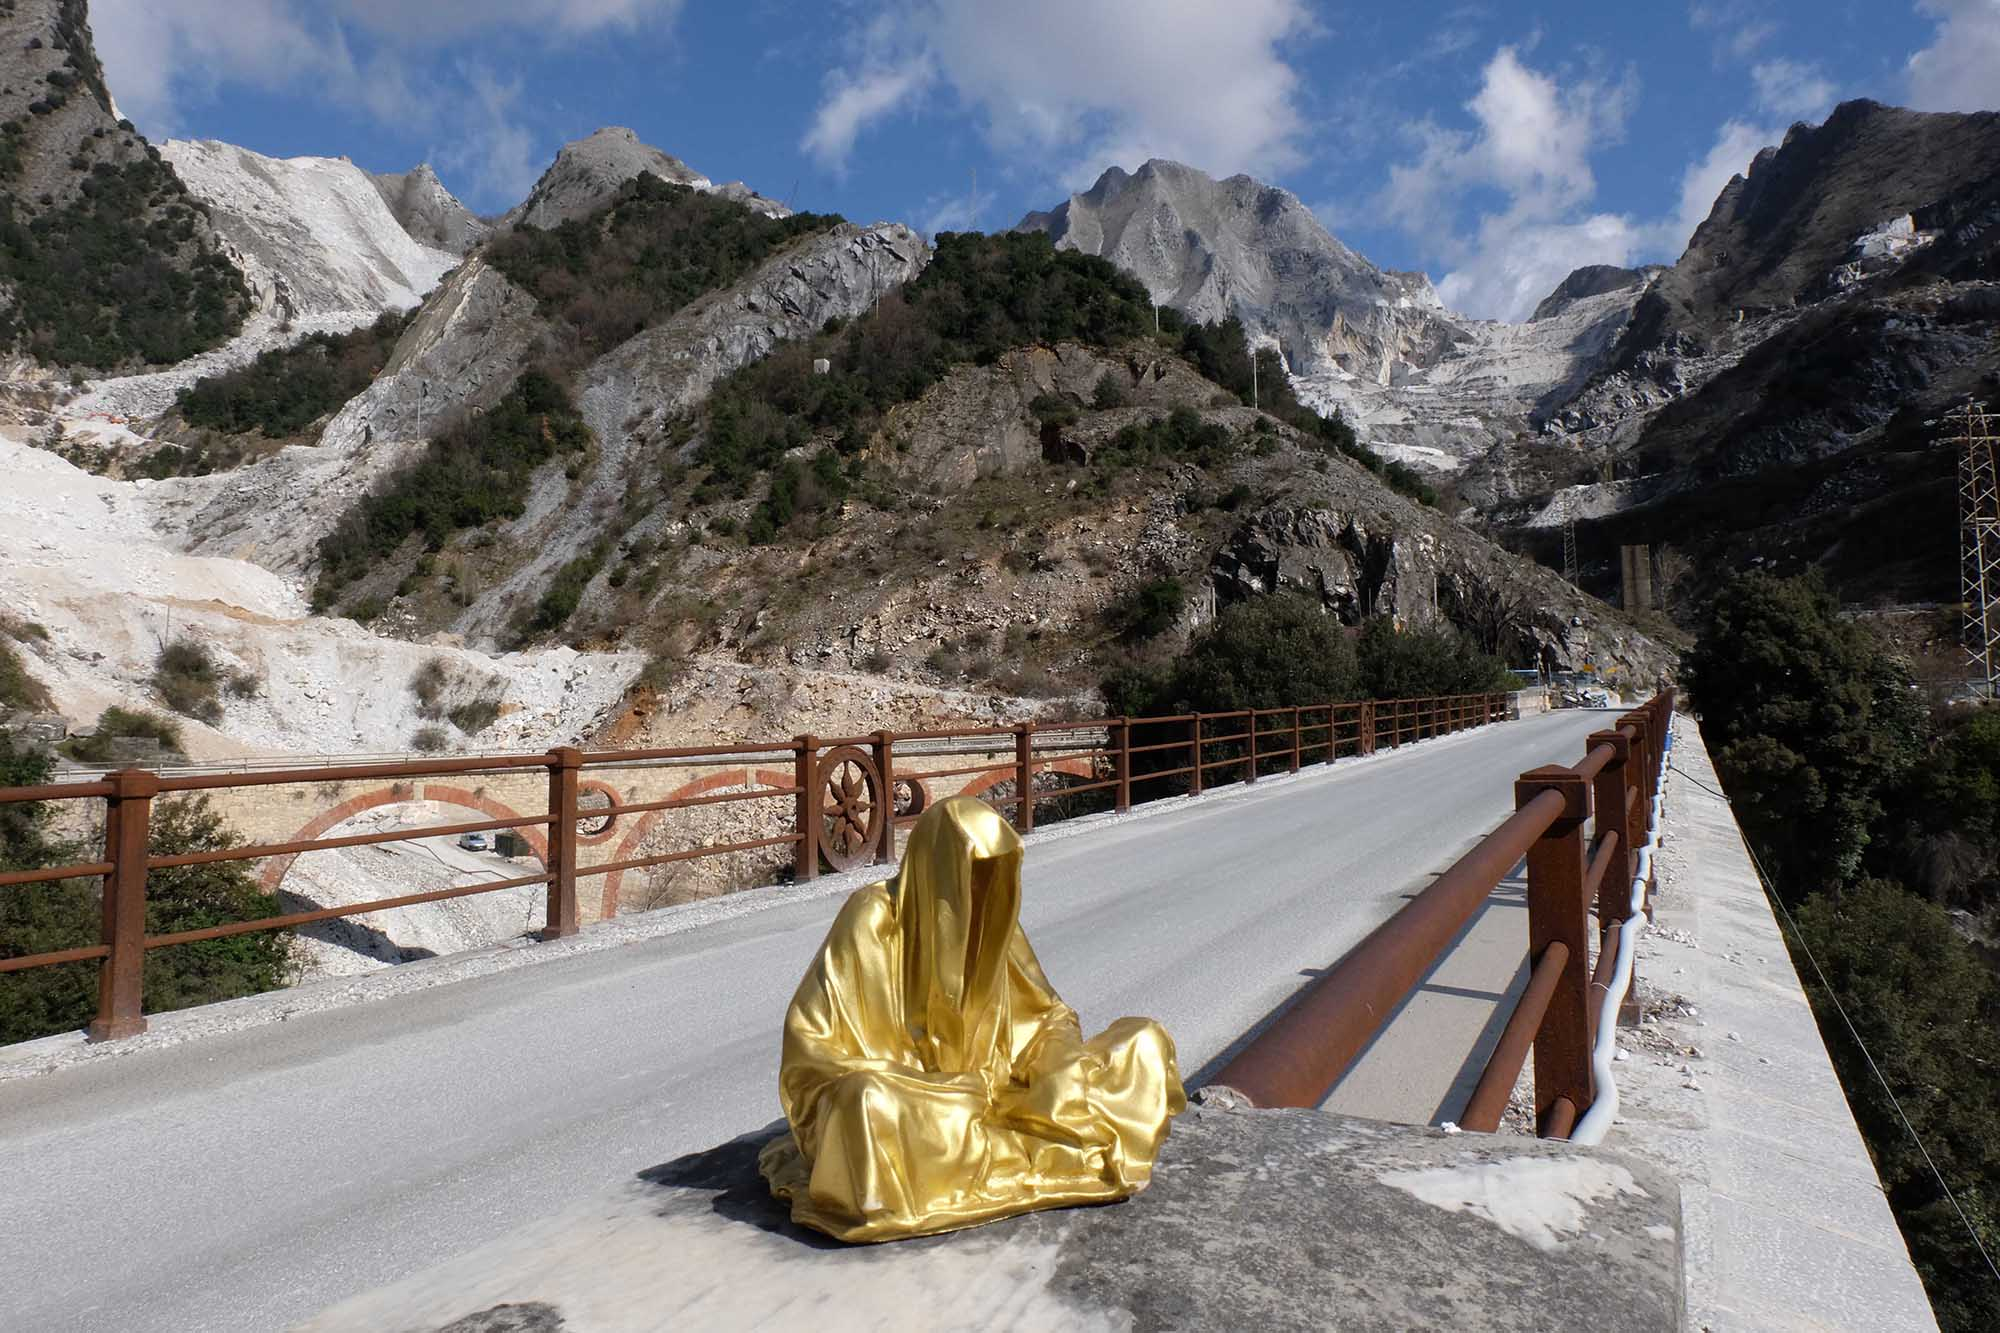 guardians of time manfred kili kielnhofer modern sculpture contemporary fine art design arts statue faceless religion stone marble carrara 0819